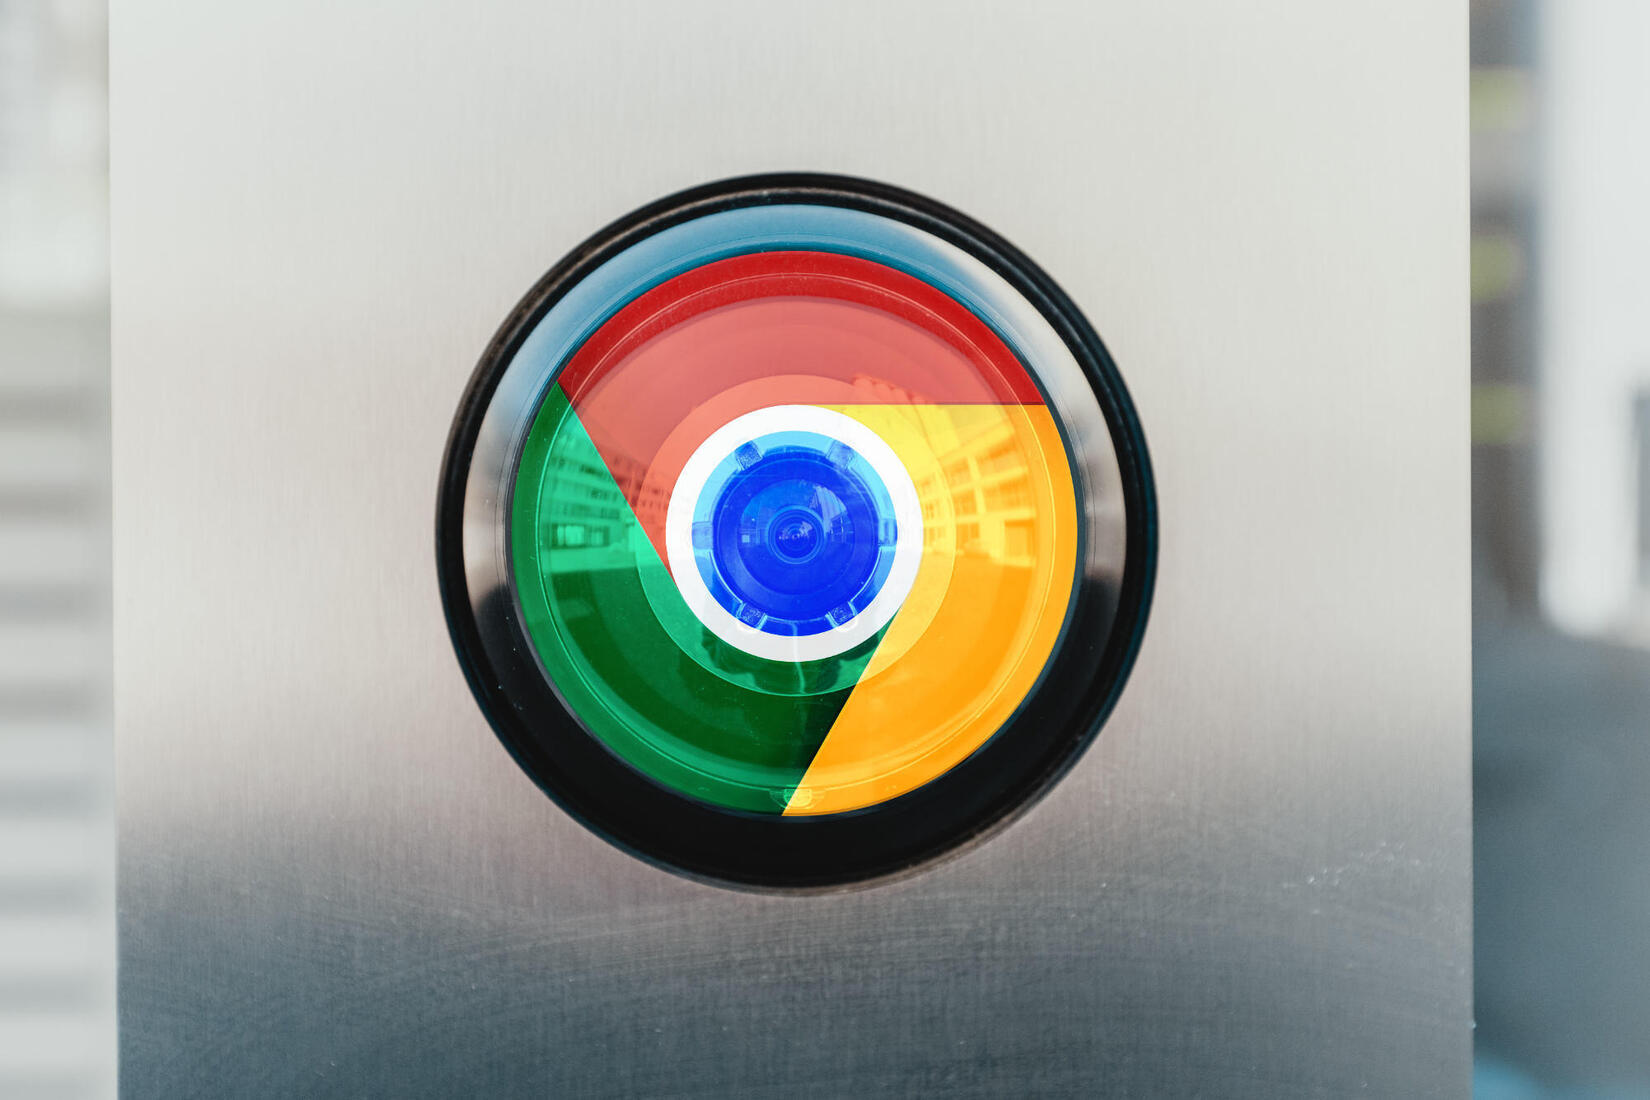 mashup of camera and chrome logo